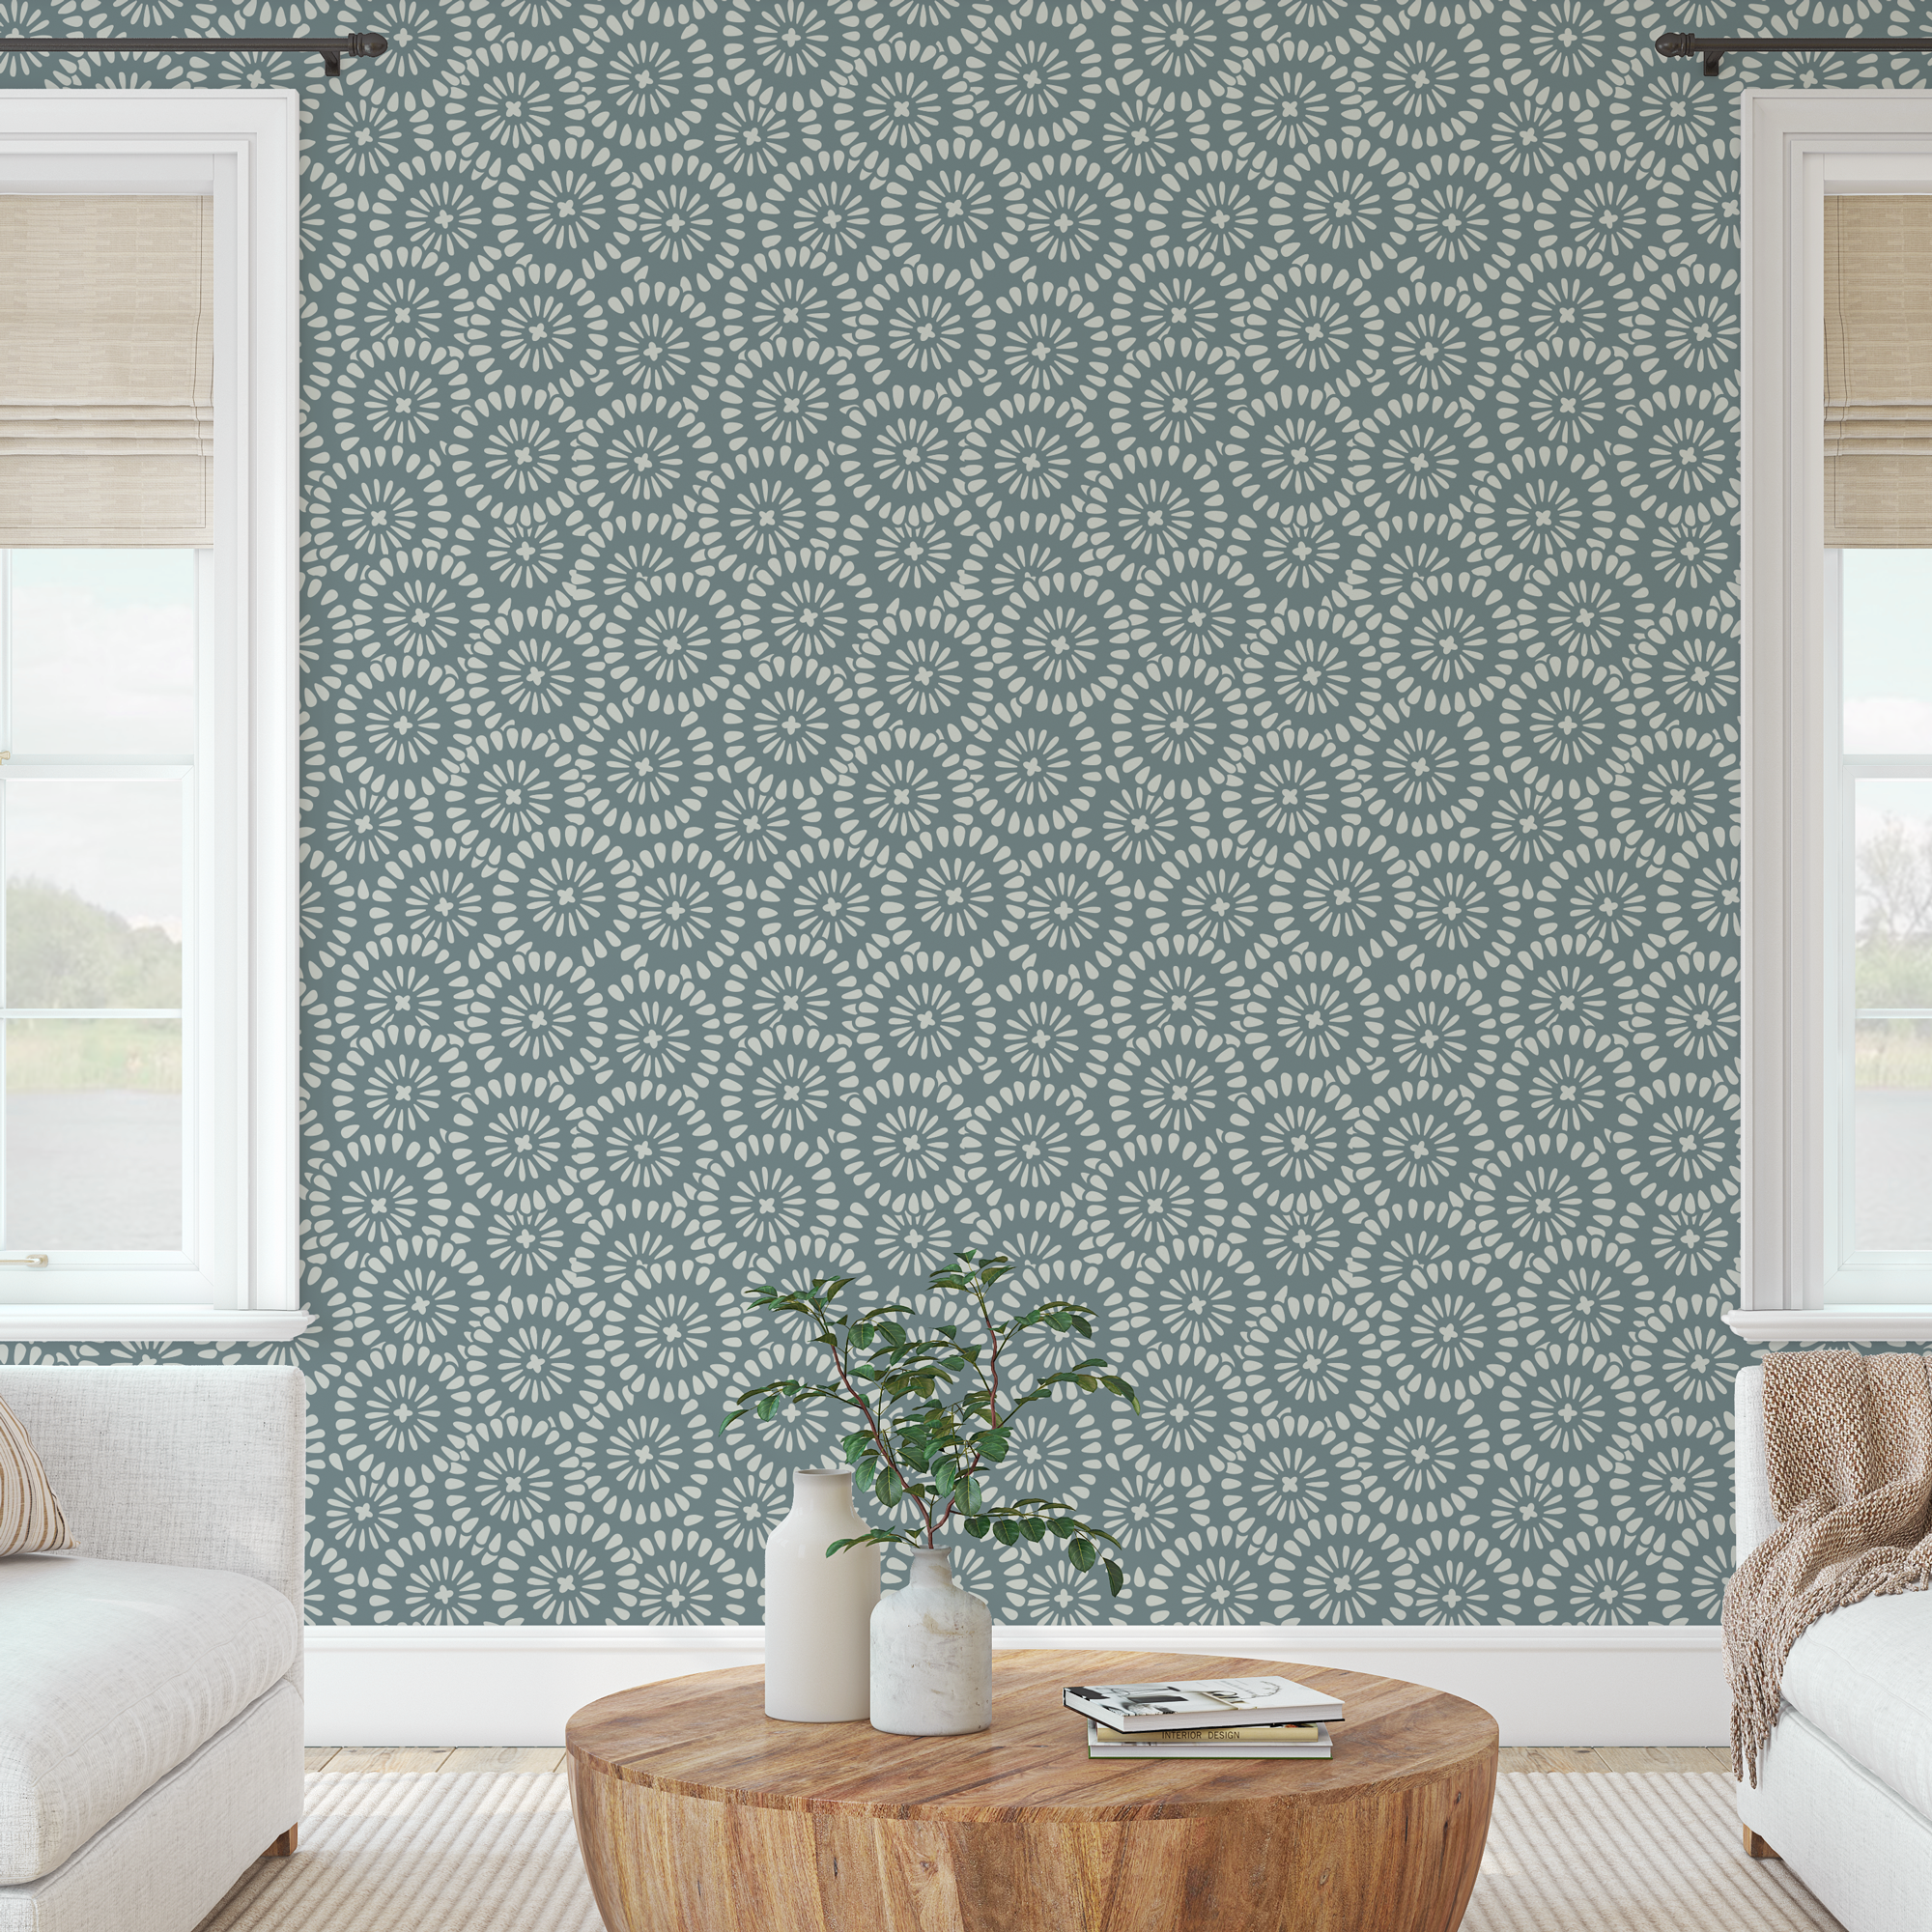 The finished repeat wall pattern in a living room.